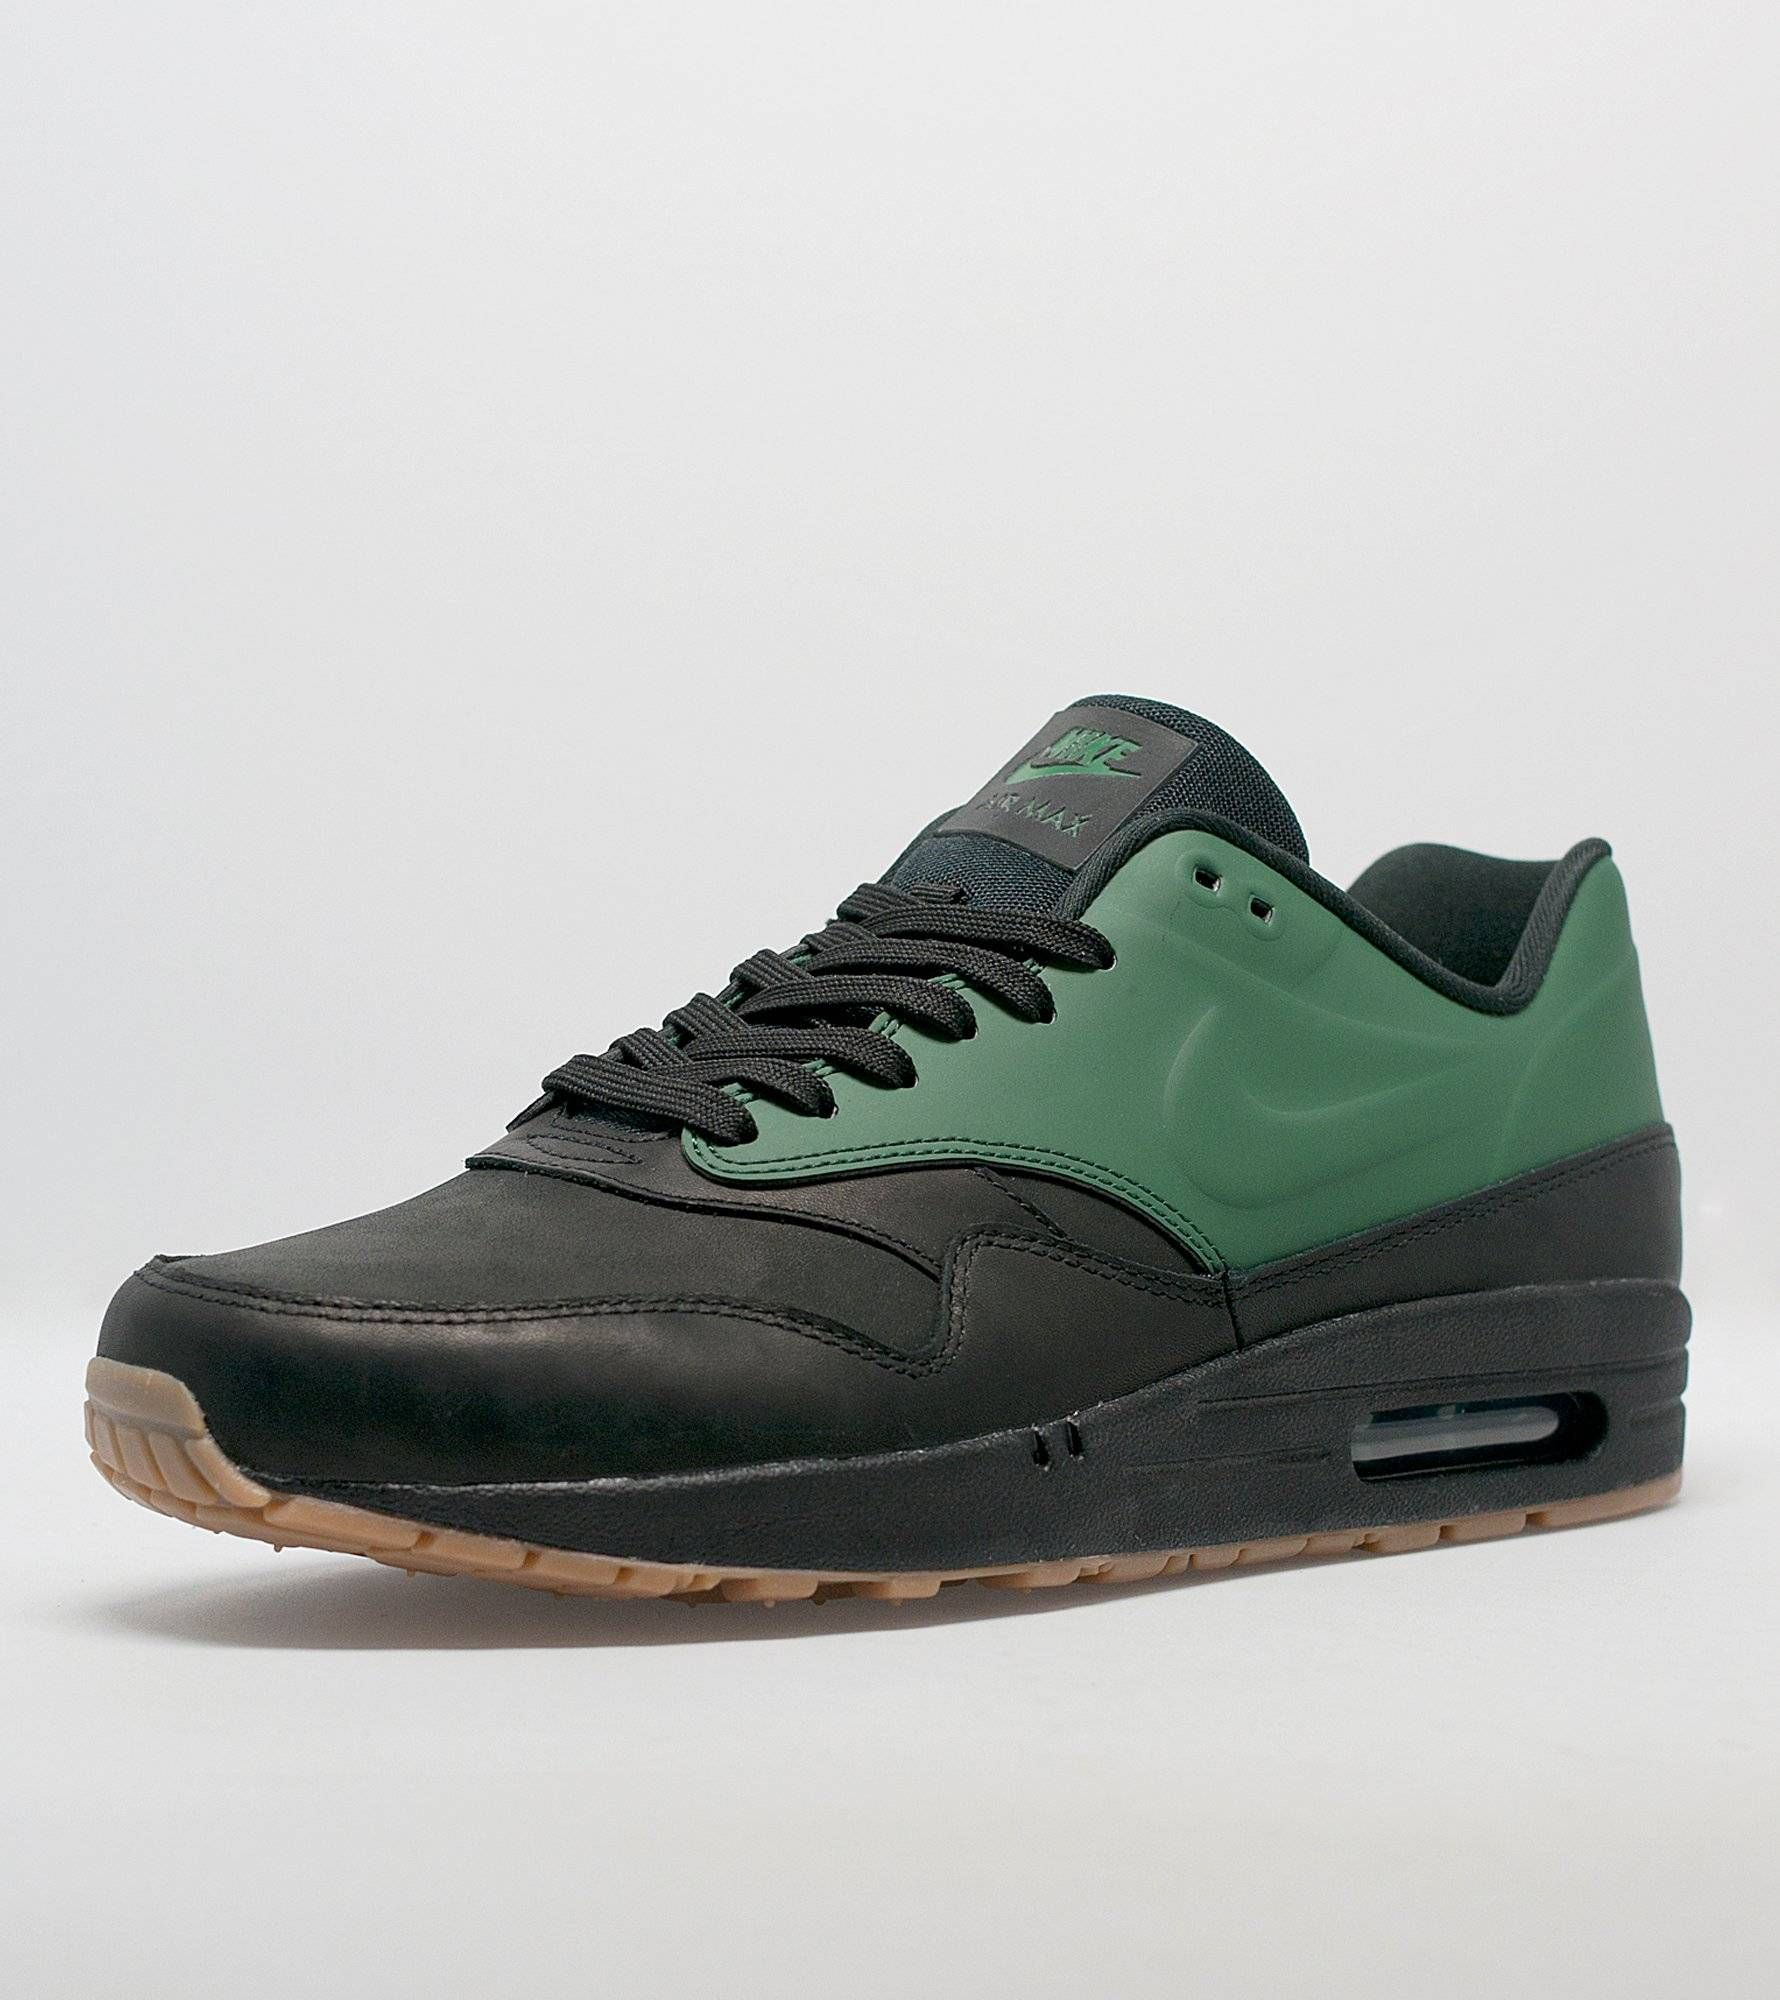 Nike Air Max 1 VT QS - find out more on our site. Find the freshest in trainers and clothing online now.